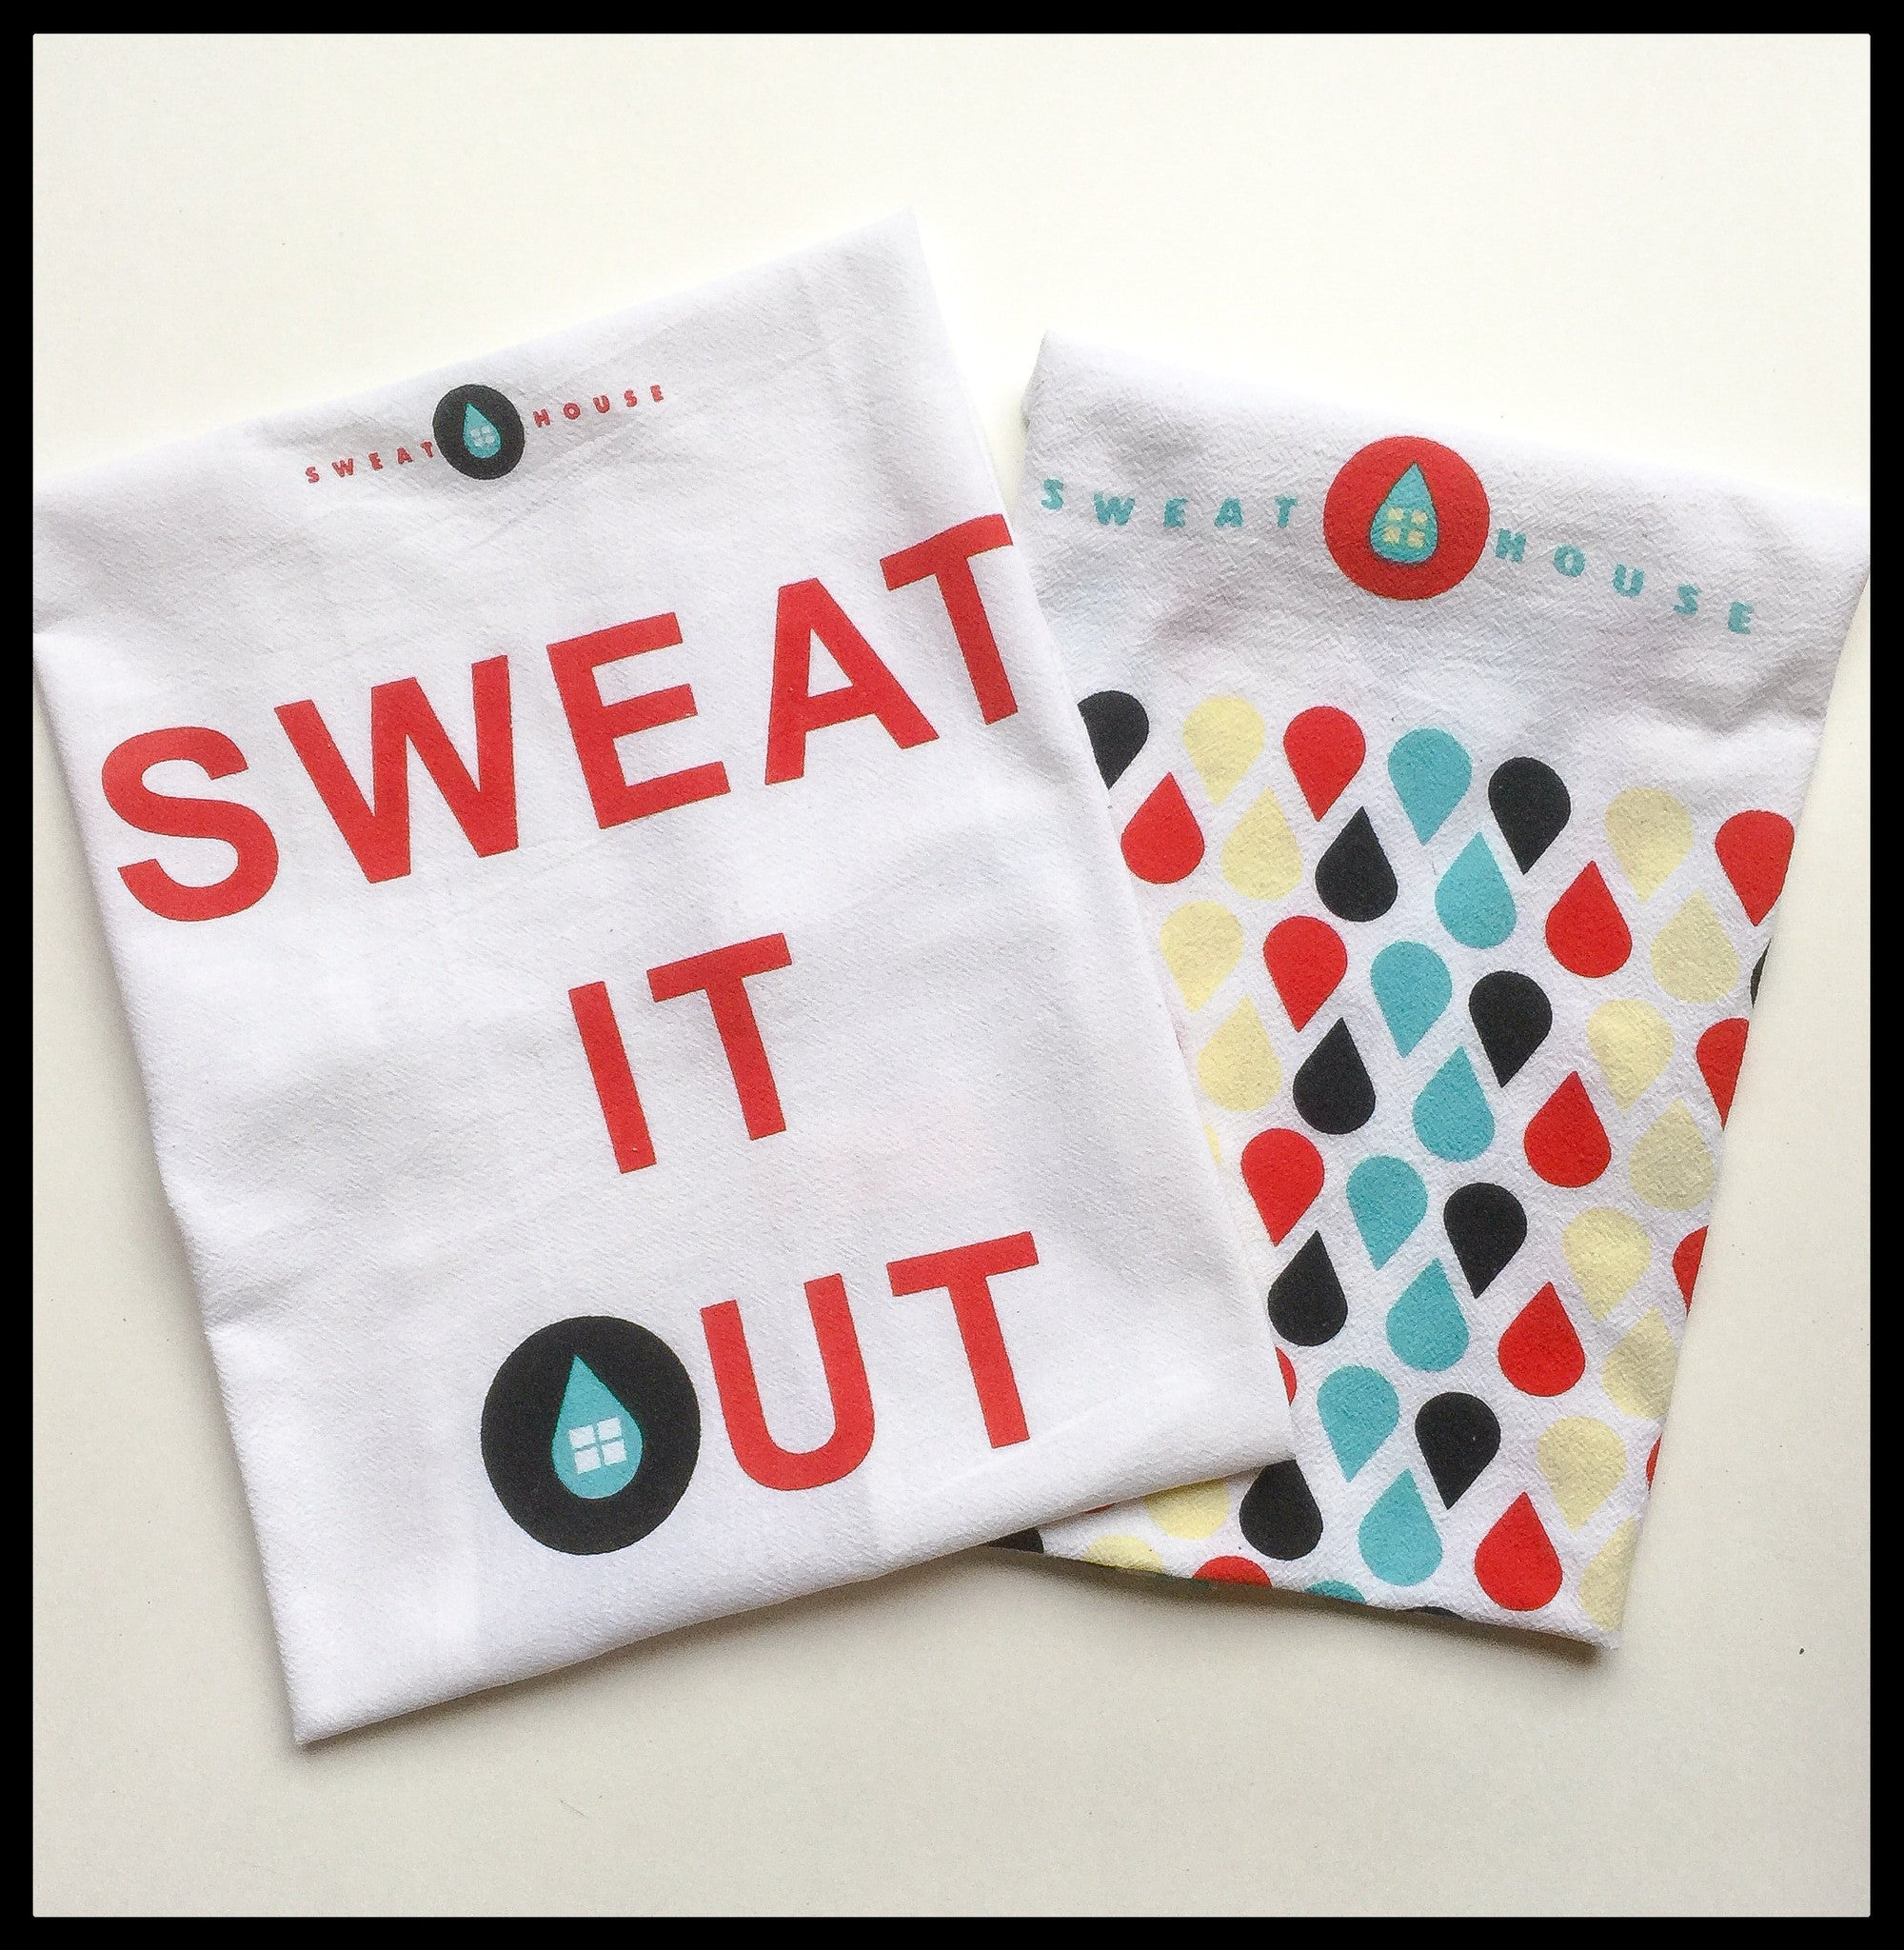 Studio 10 sets of Sweathouse Hot Yoga Towels